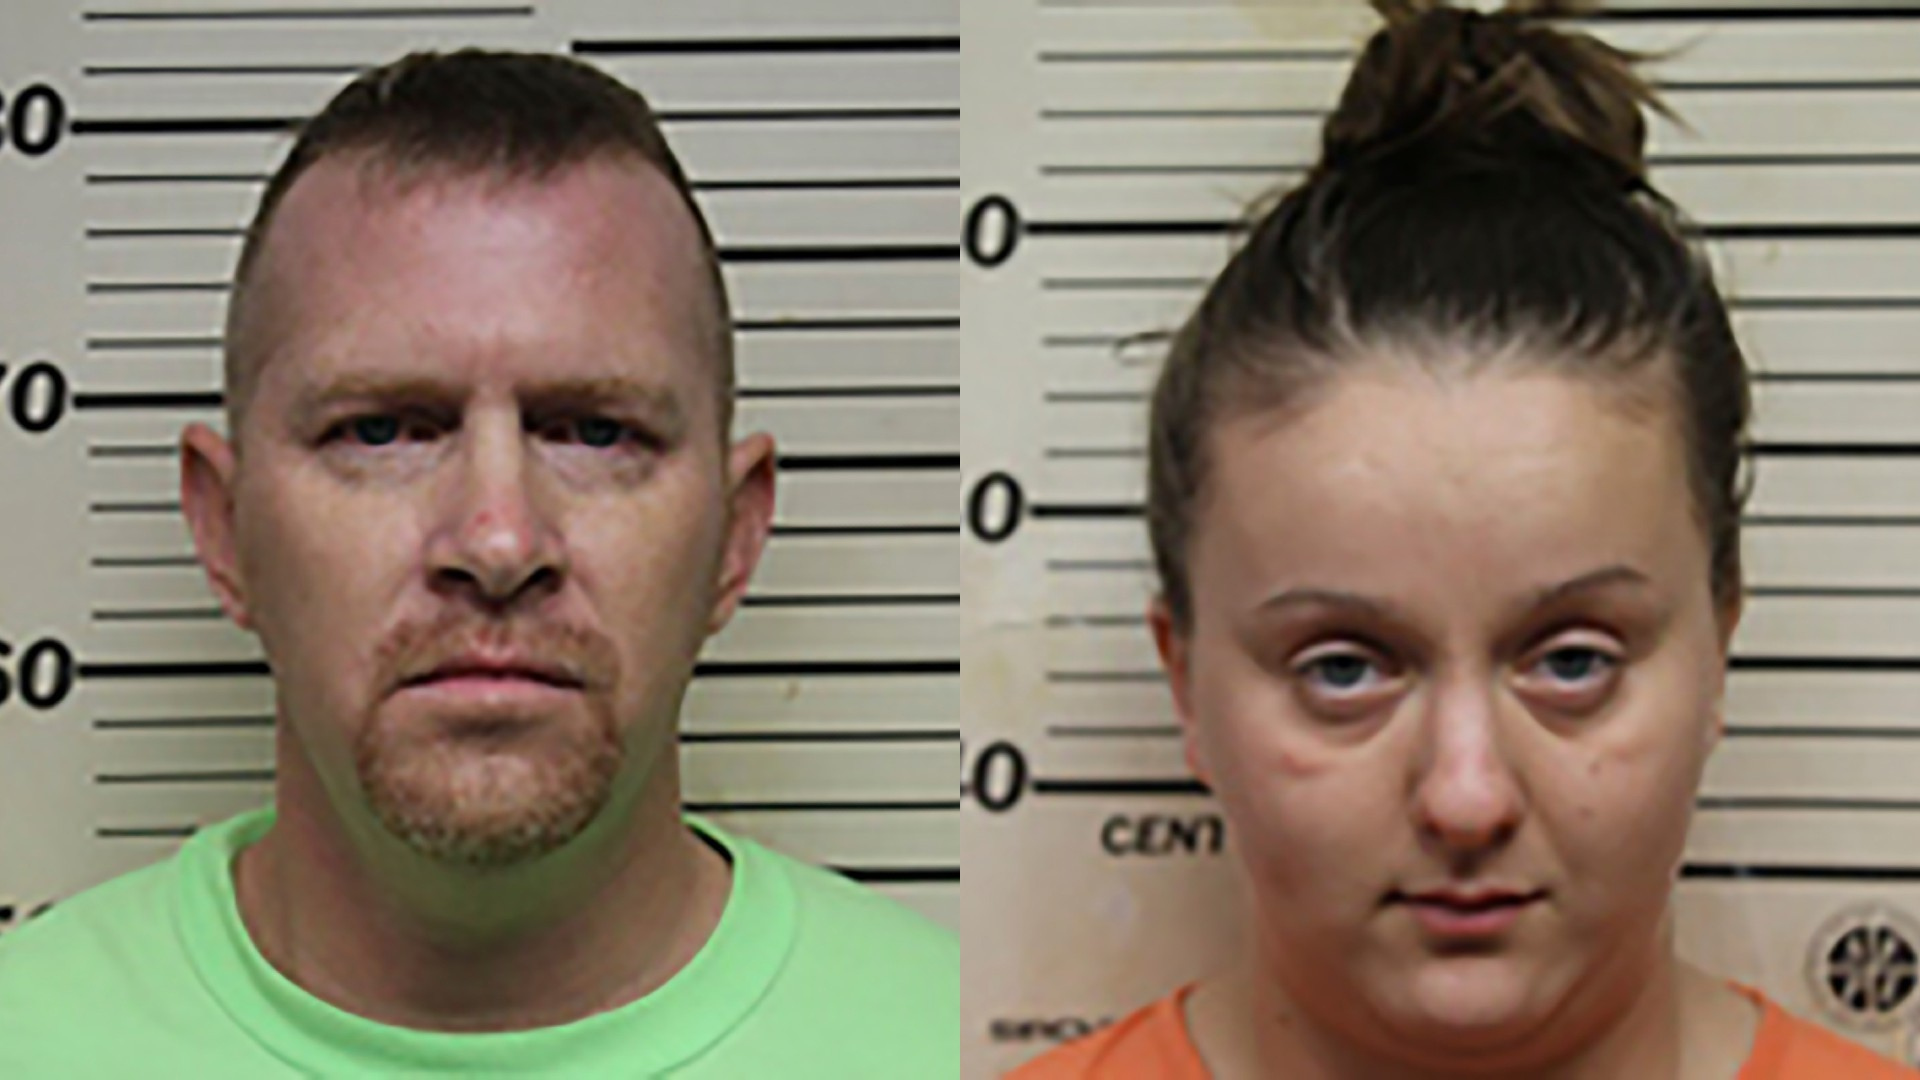 Ethan Mast, left, and Kourtney Aumen, right, are seen in booking photos released by the Benton County (Missouri) Sheriff's Department.